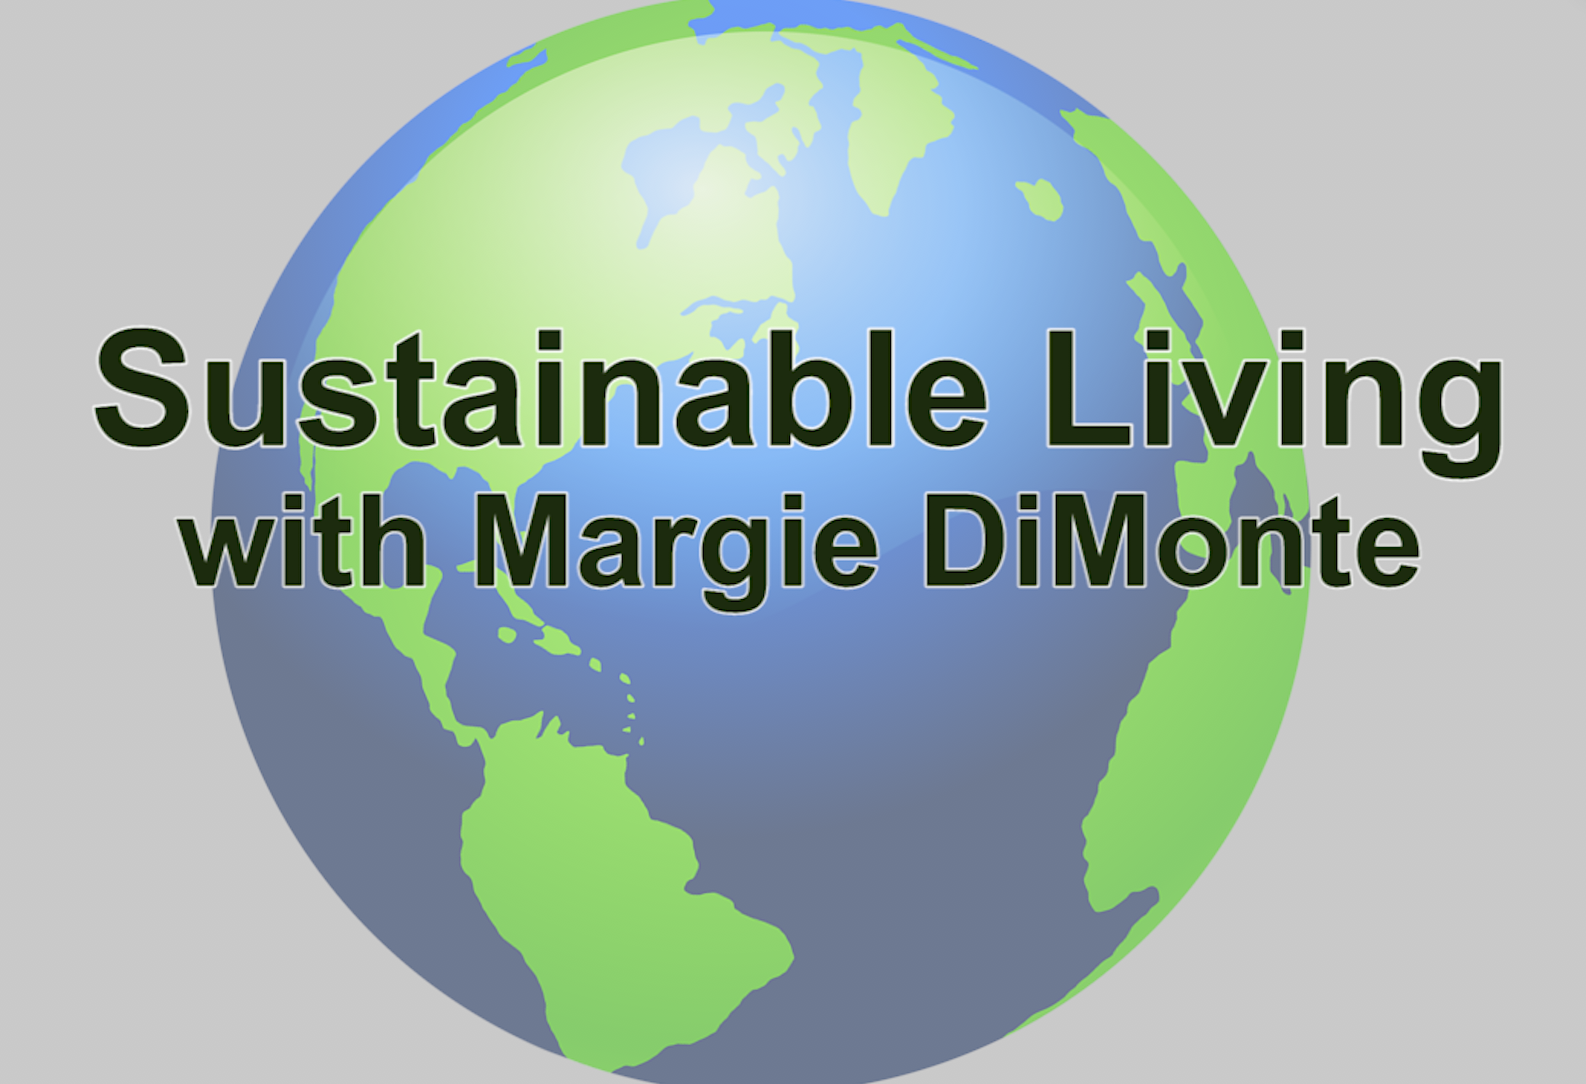 Sustainable LIving with Margie DiMonte